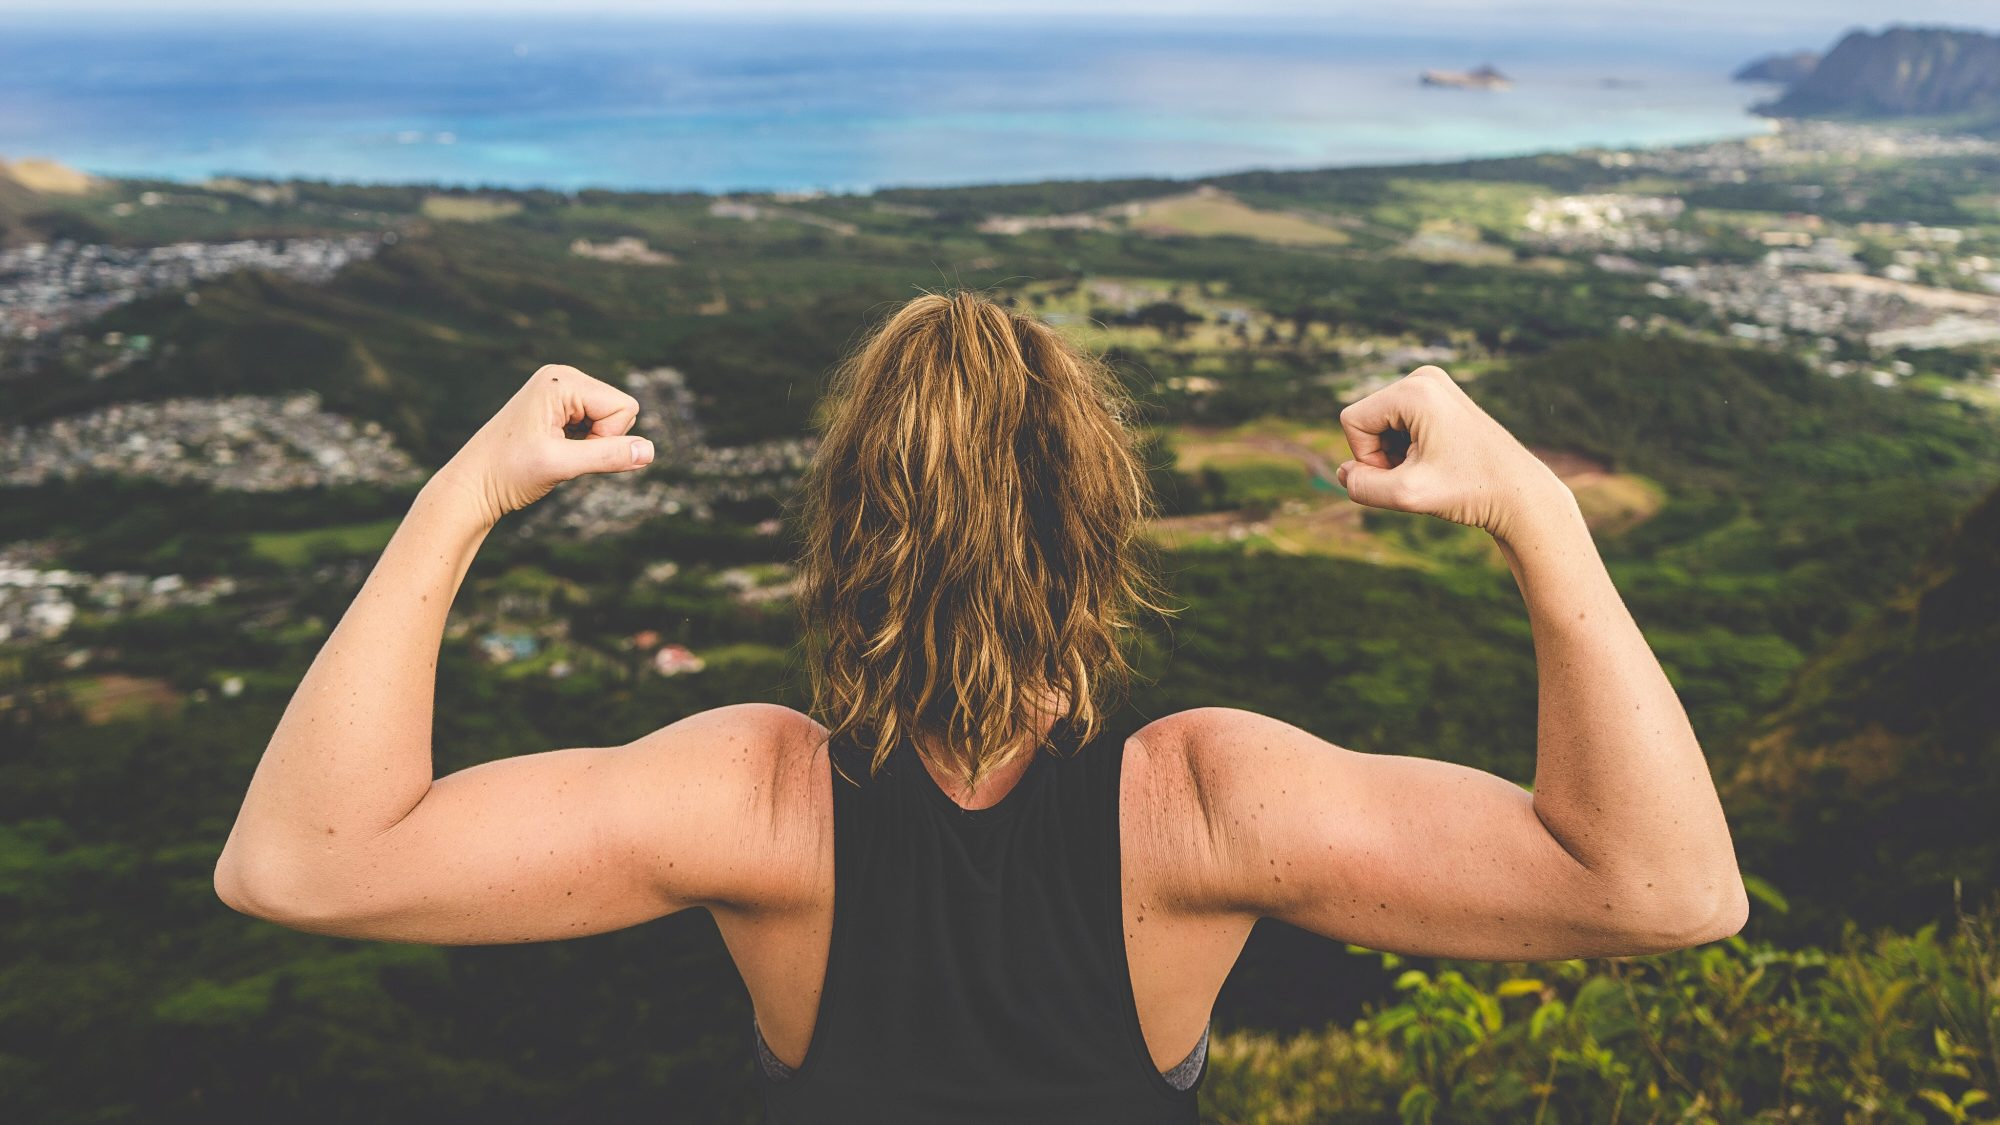 How to build resilience - strengthening resiliency muscle (woman flexing)